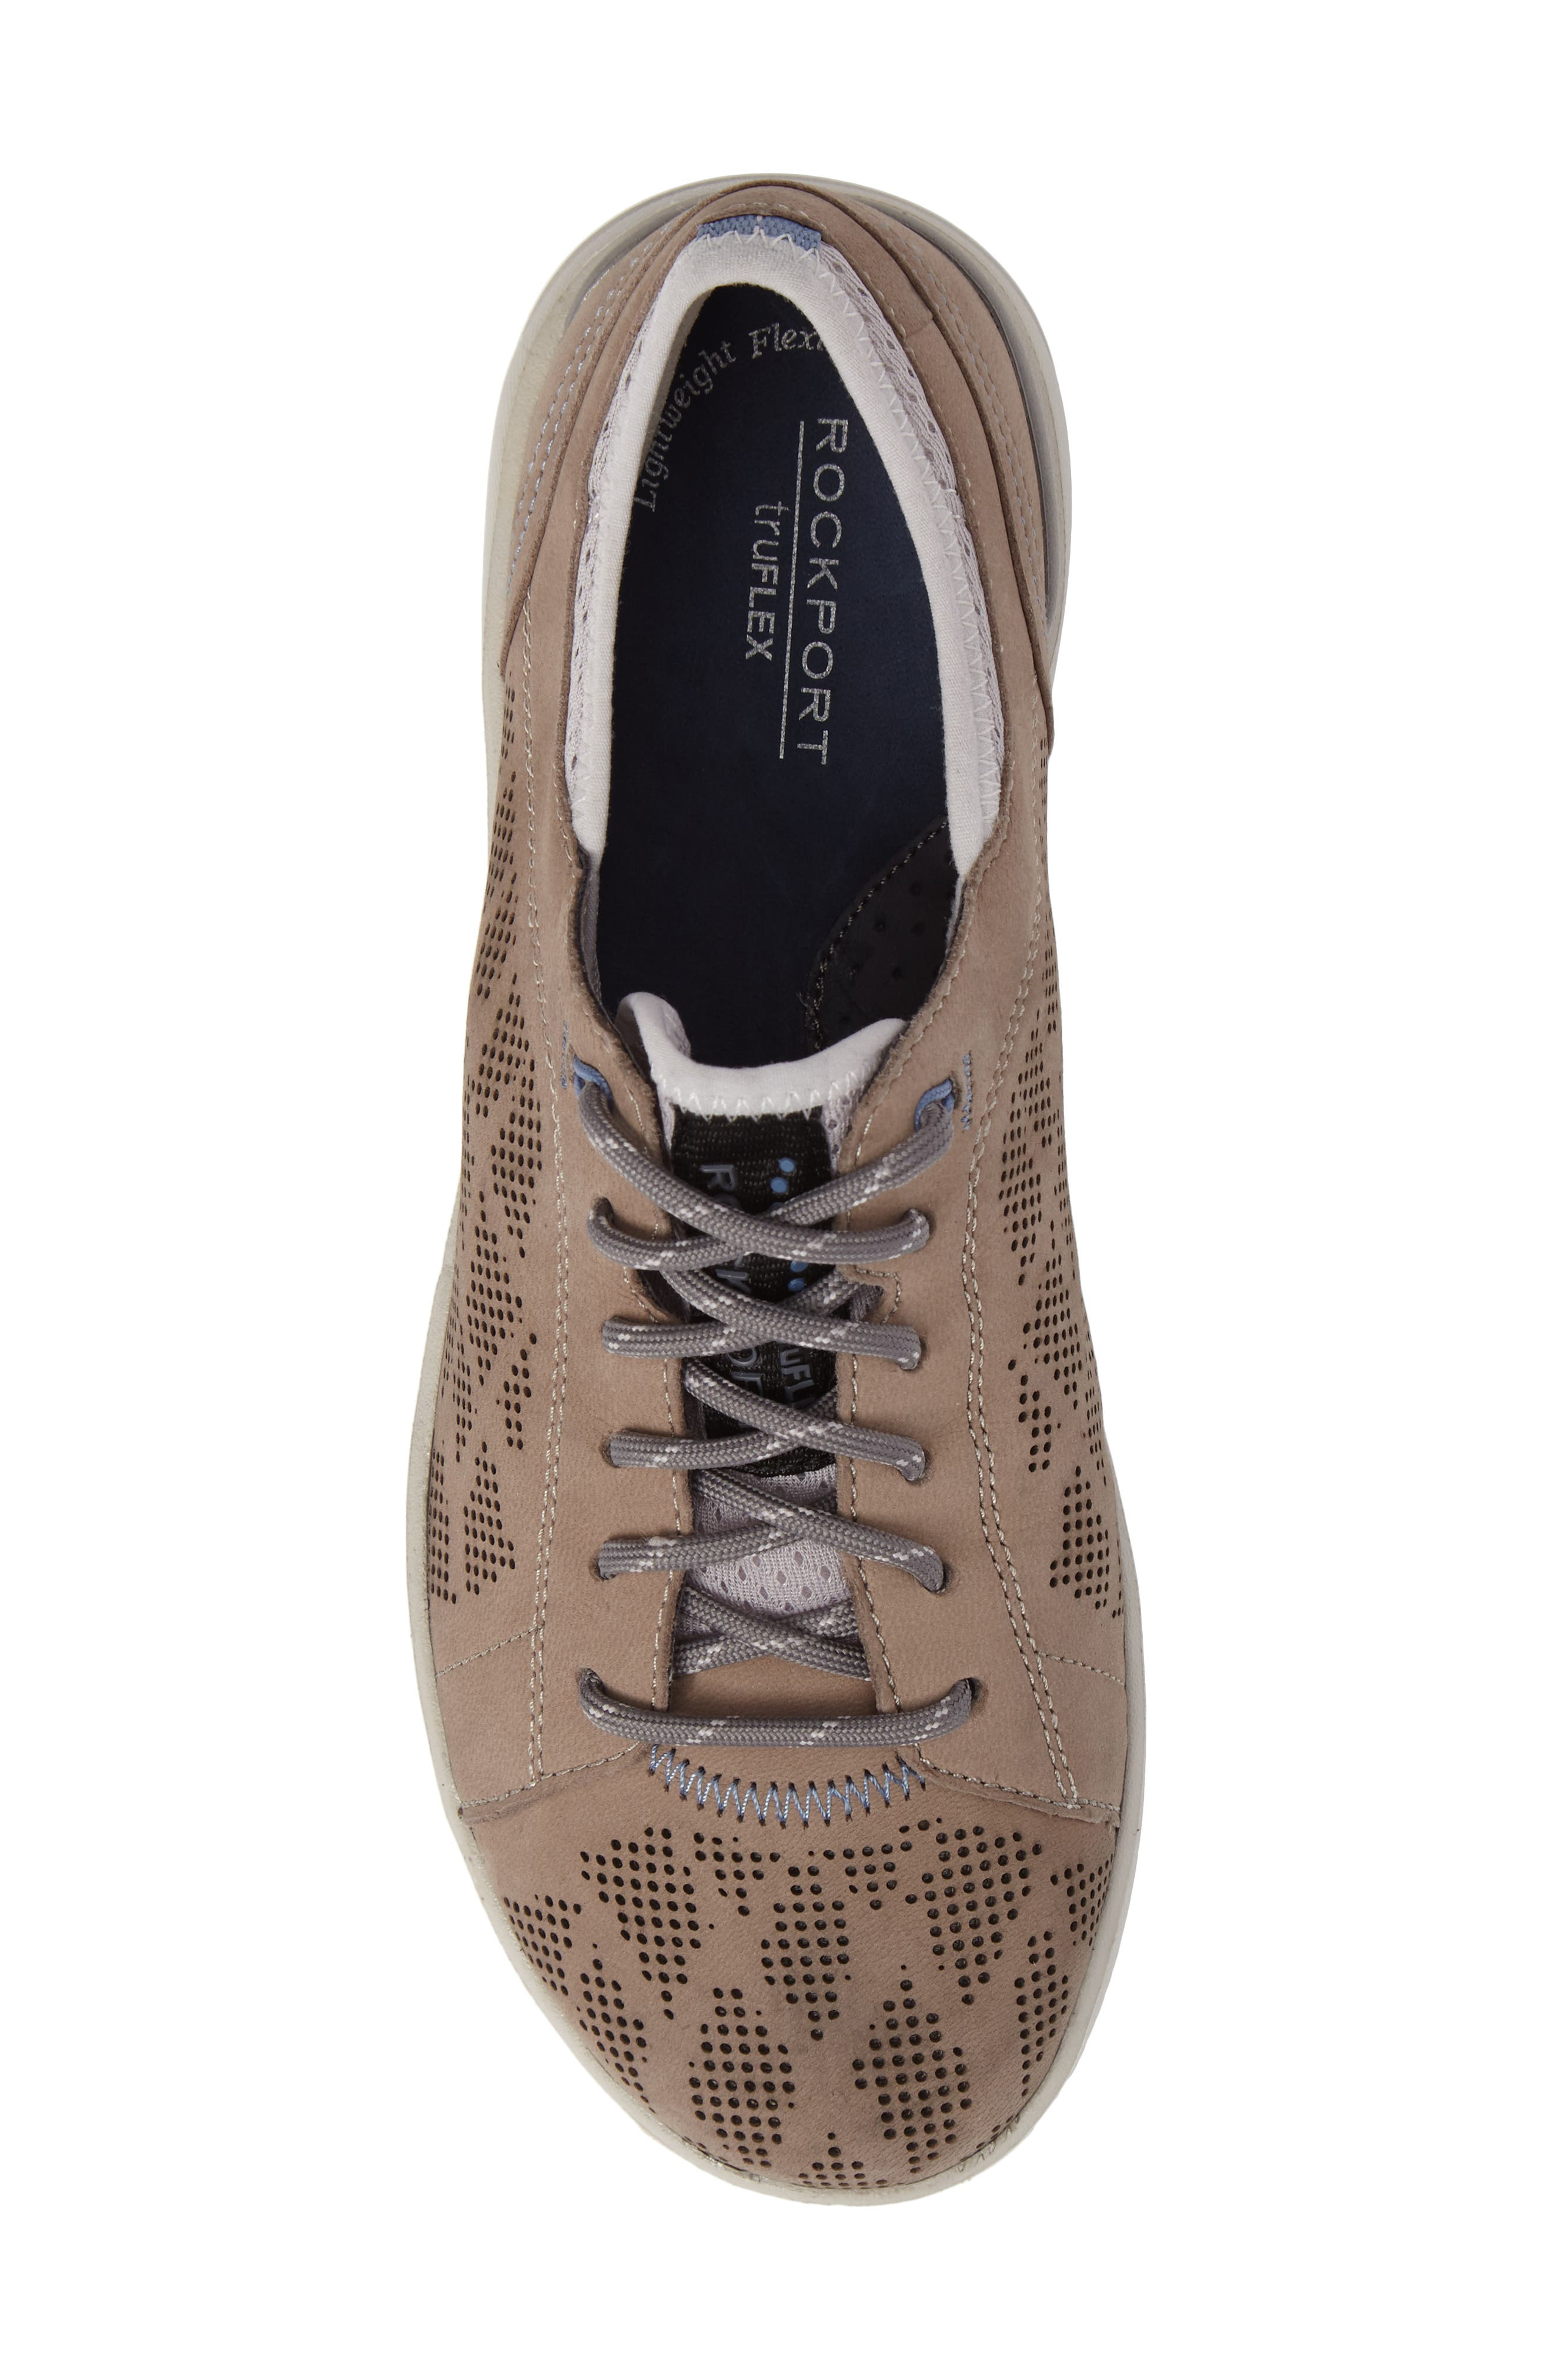 truFLEX Perforated Sneaker,                             Alternate thumbnail 5, color,                             Sand Leather